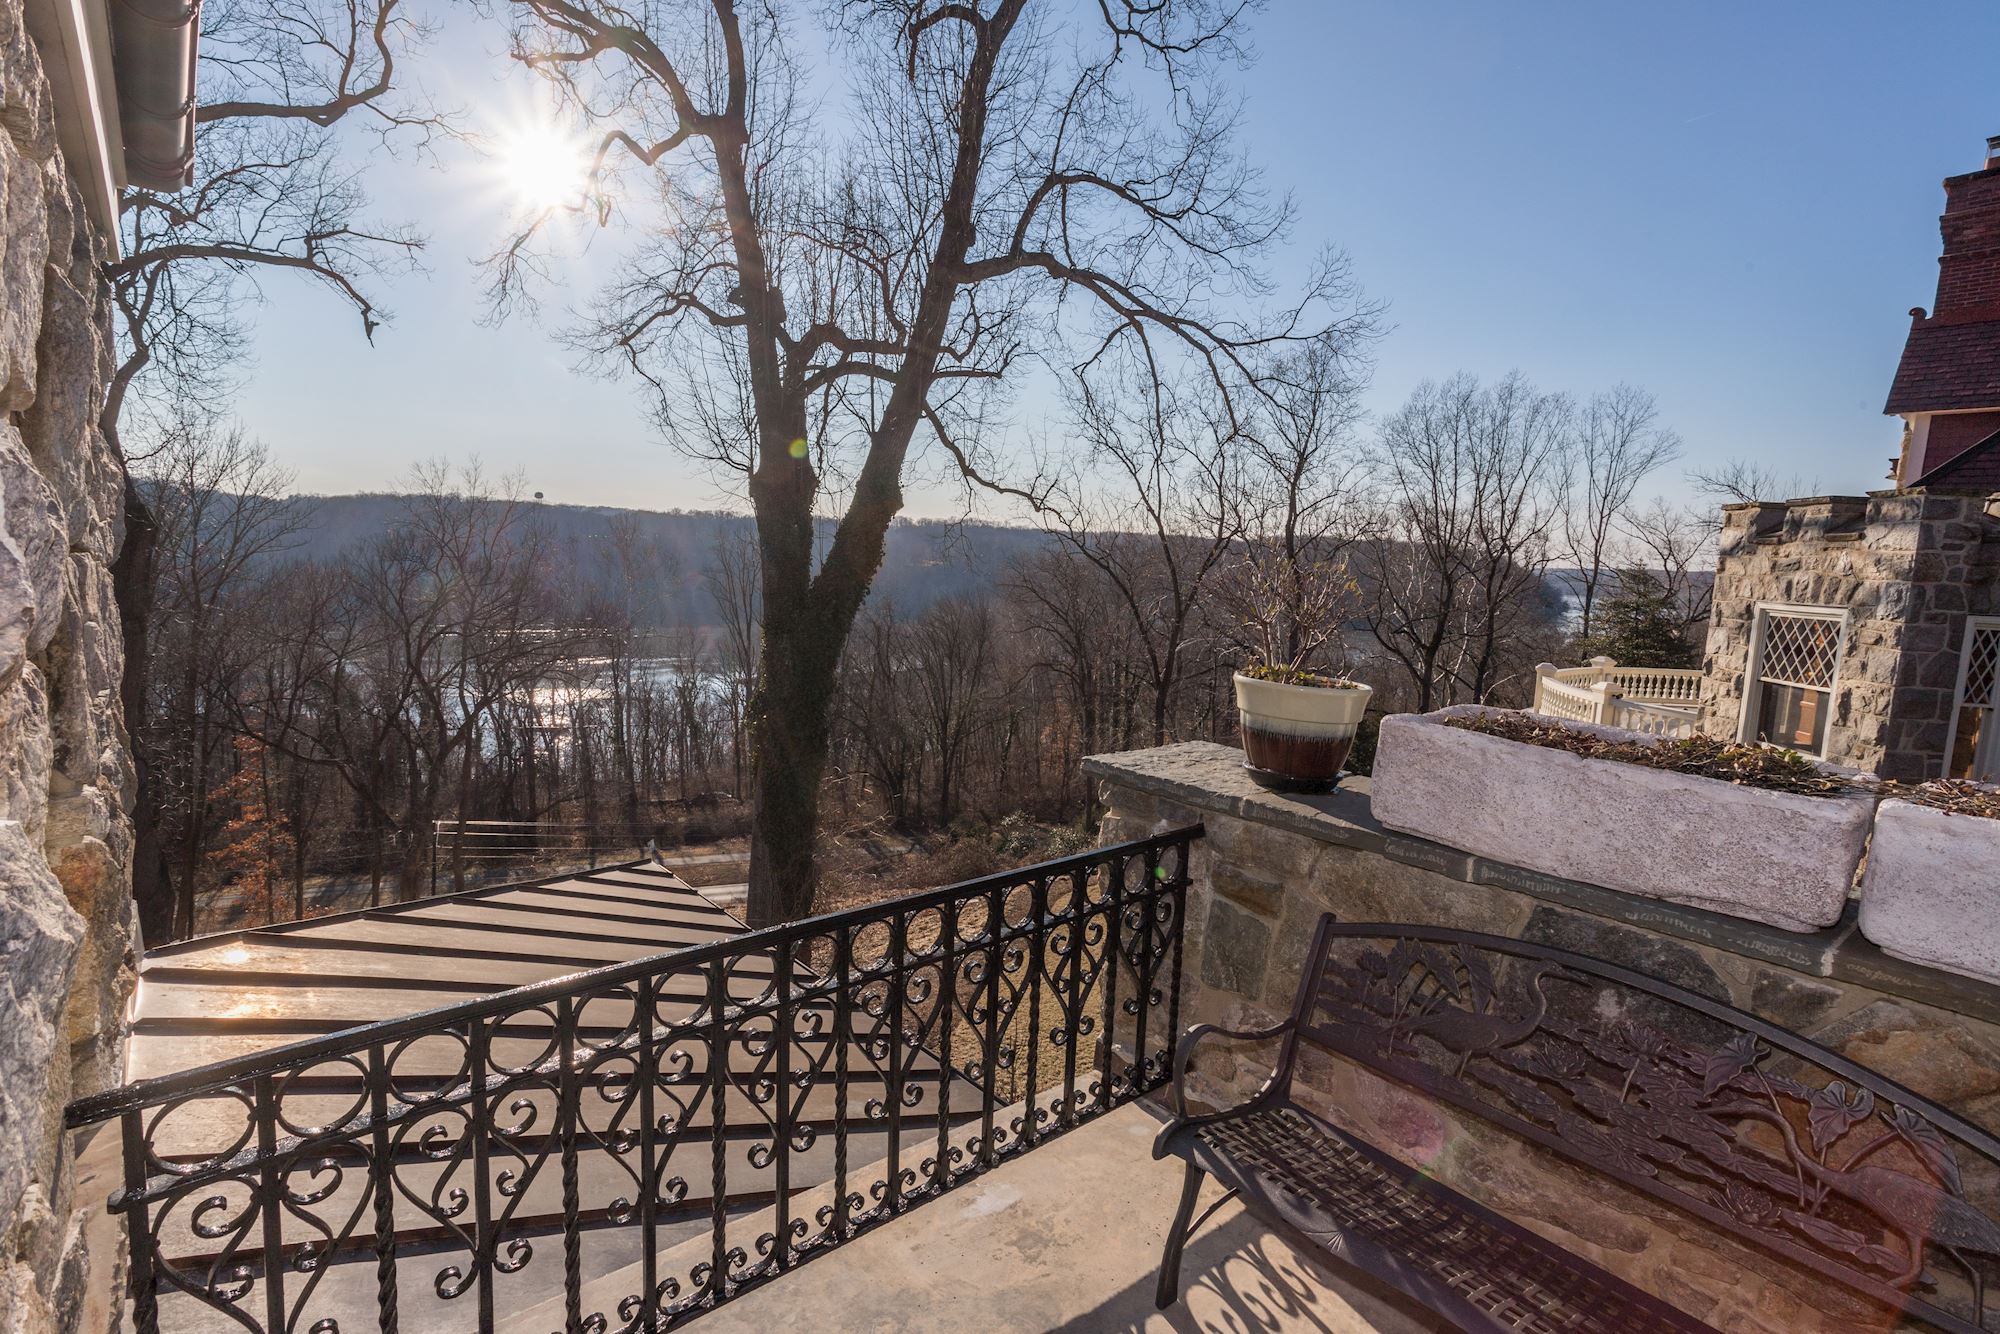 Bethesda Maryland Master Suite Remodeling: 5417 MOHICAN RD, BETHESDA, MD 20816